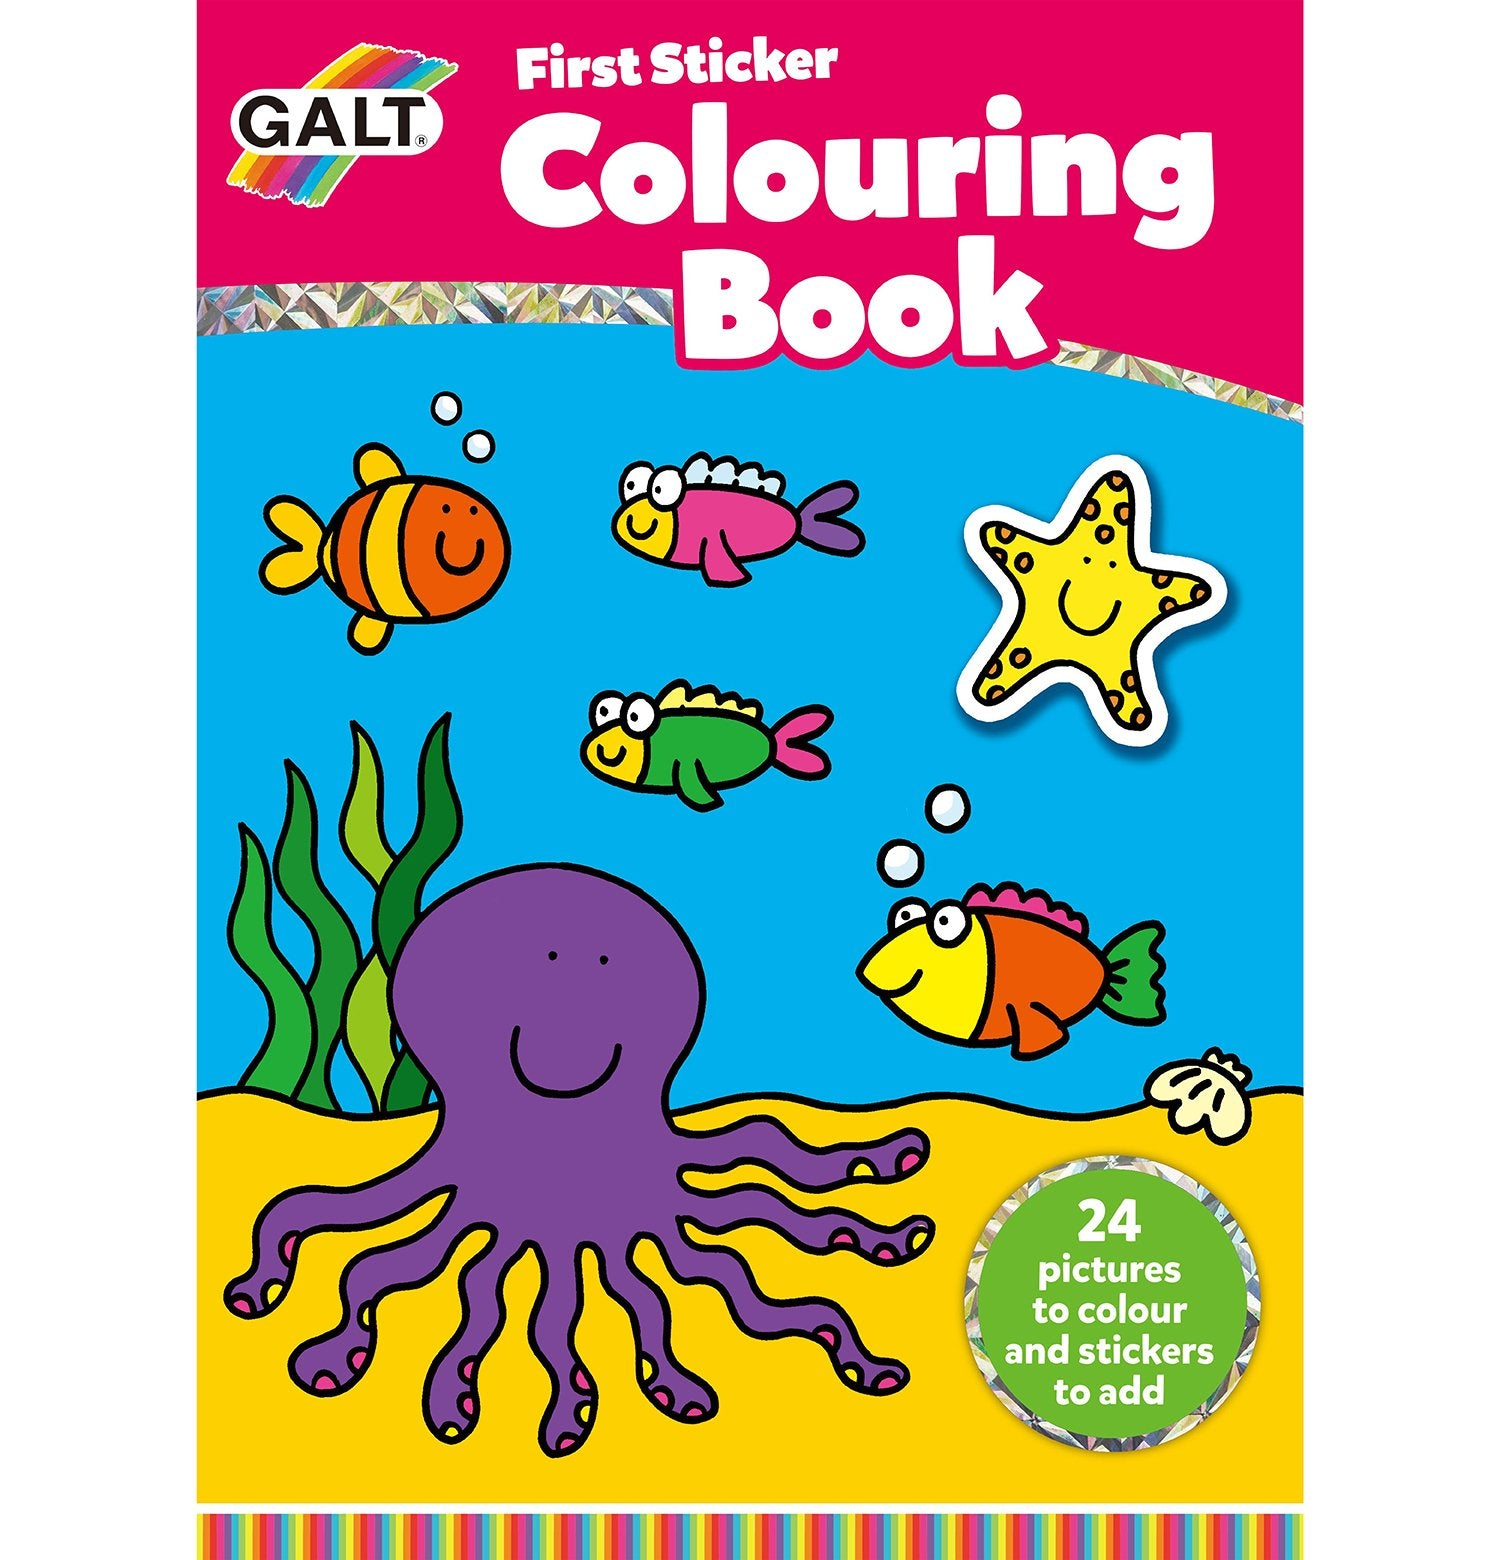 First Sticker Colouring Book - Galt